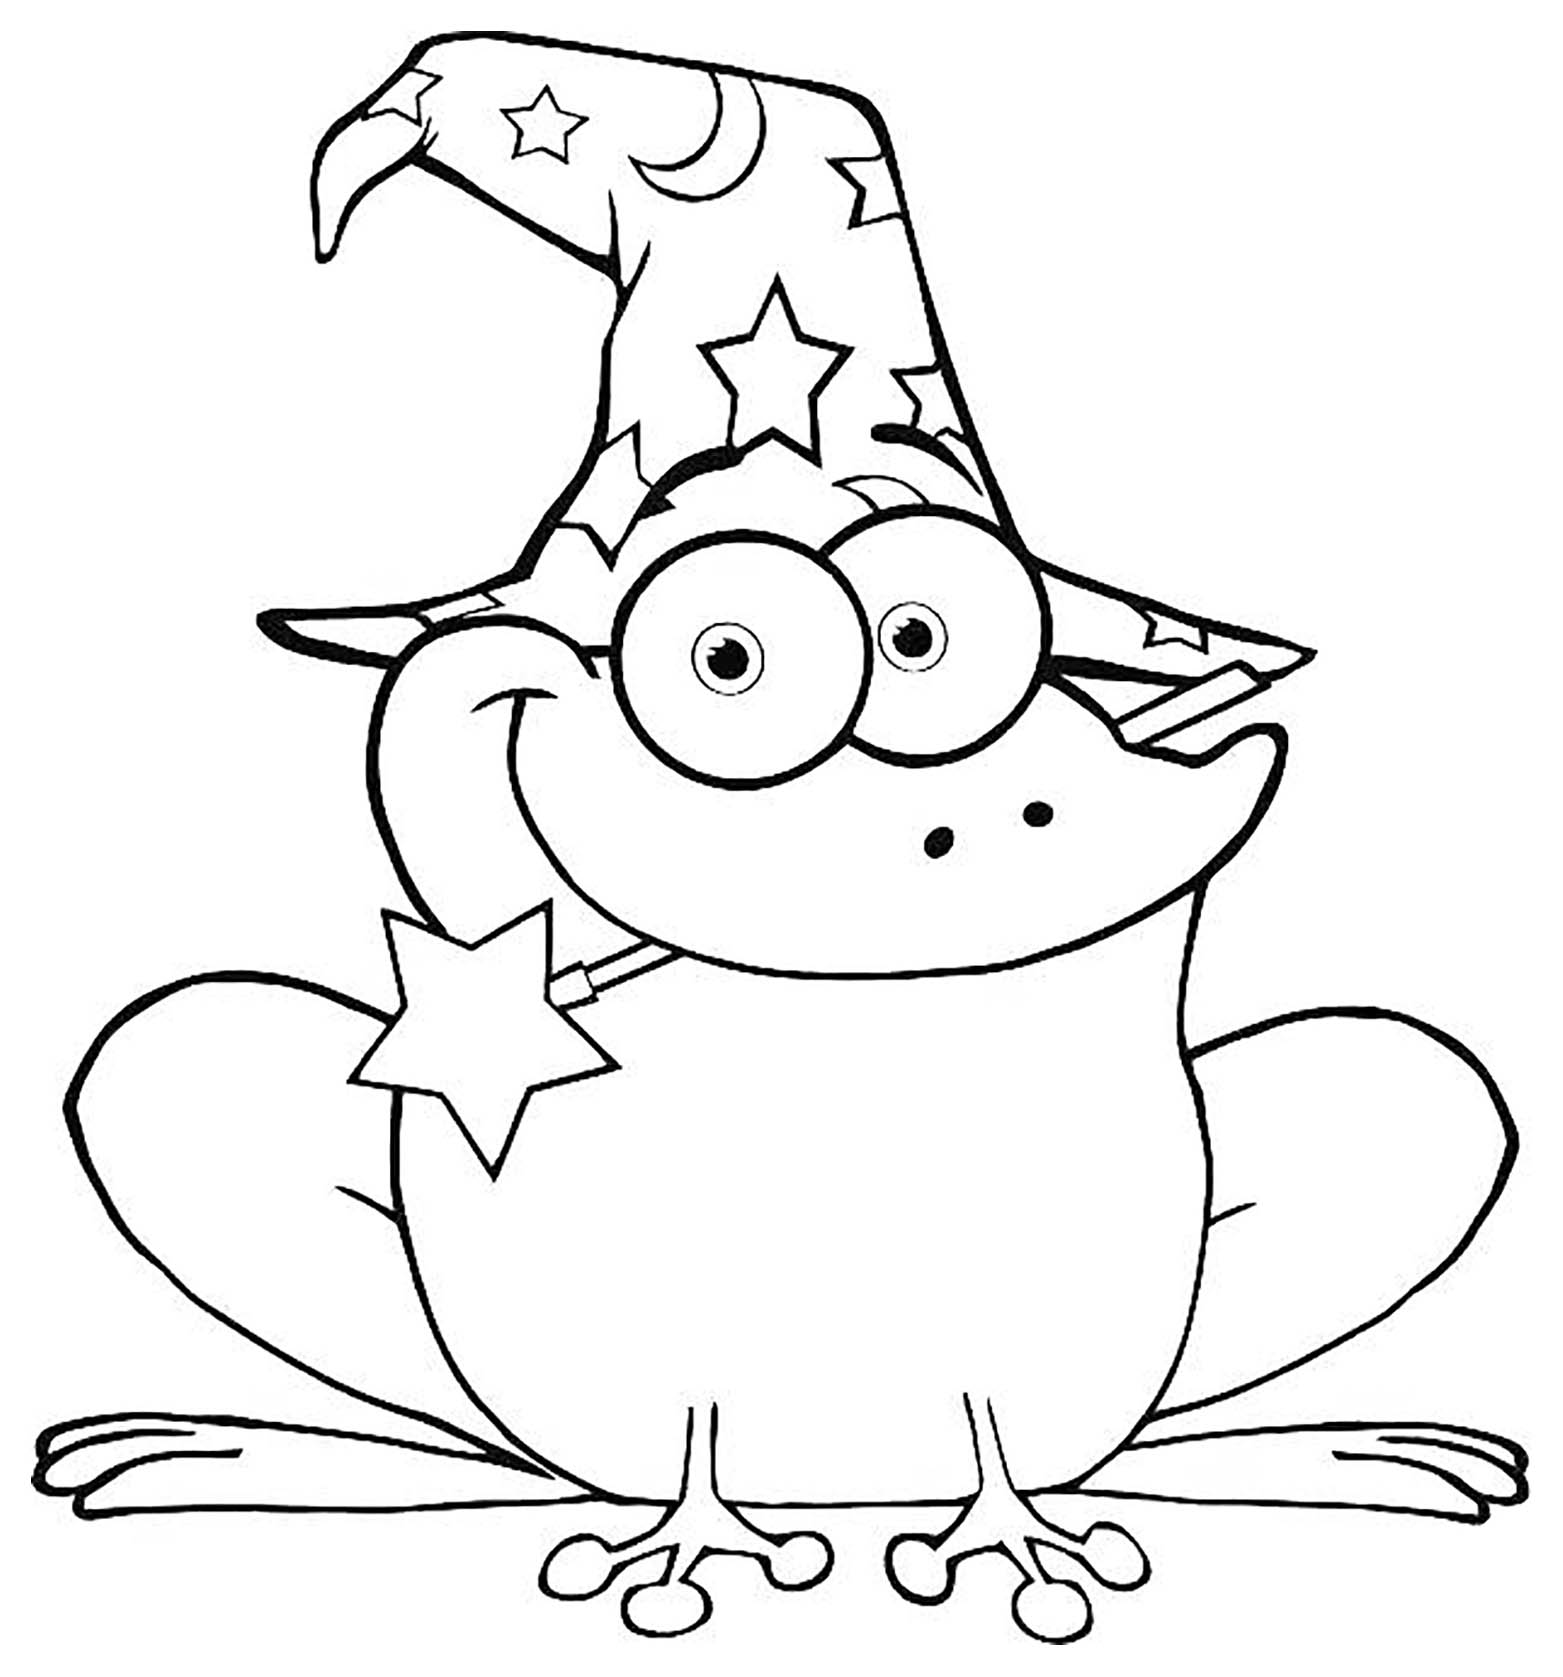 Incredible Frogs coloring page to print and color for free